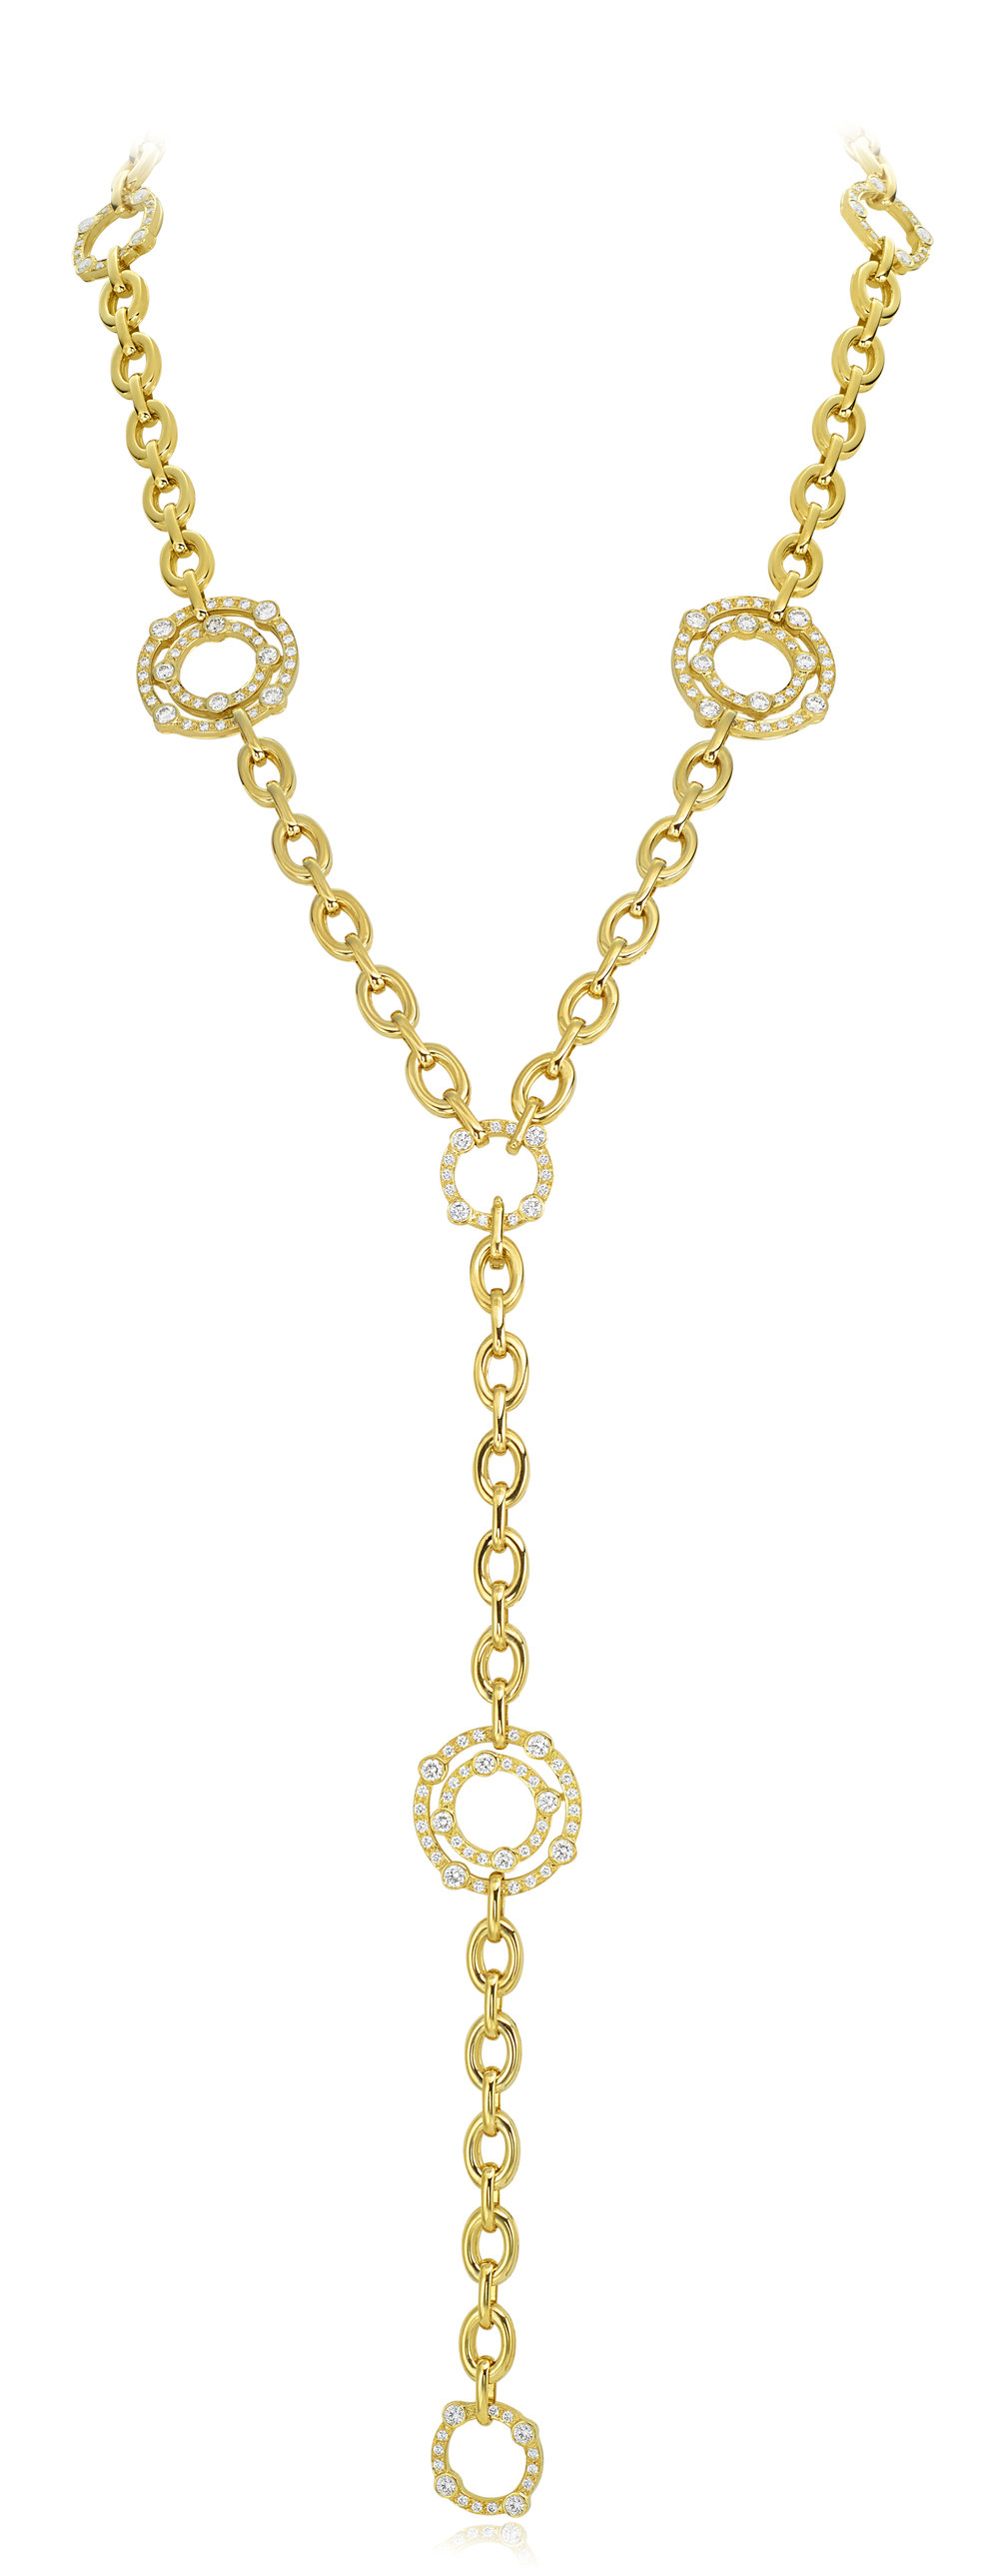 Gold & Diamond Carousel Necklace